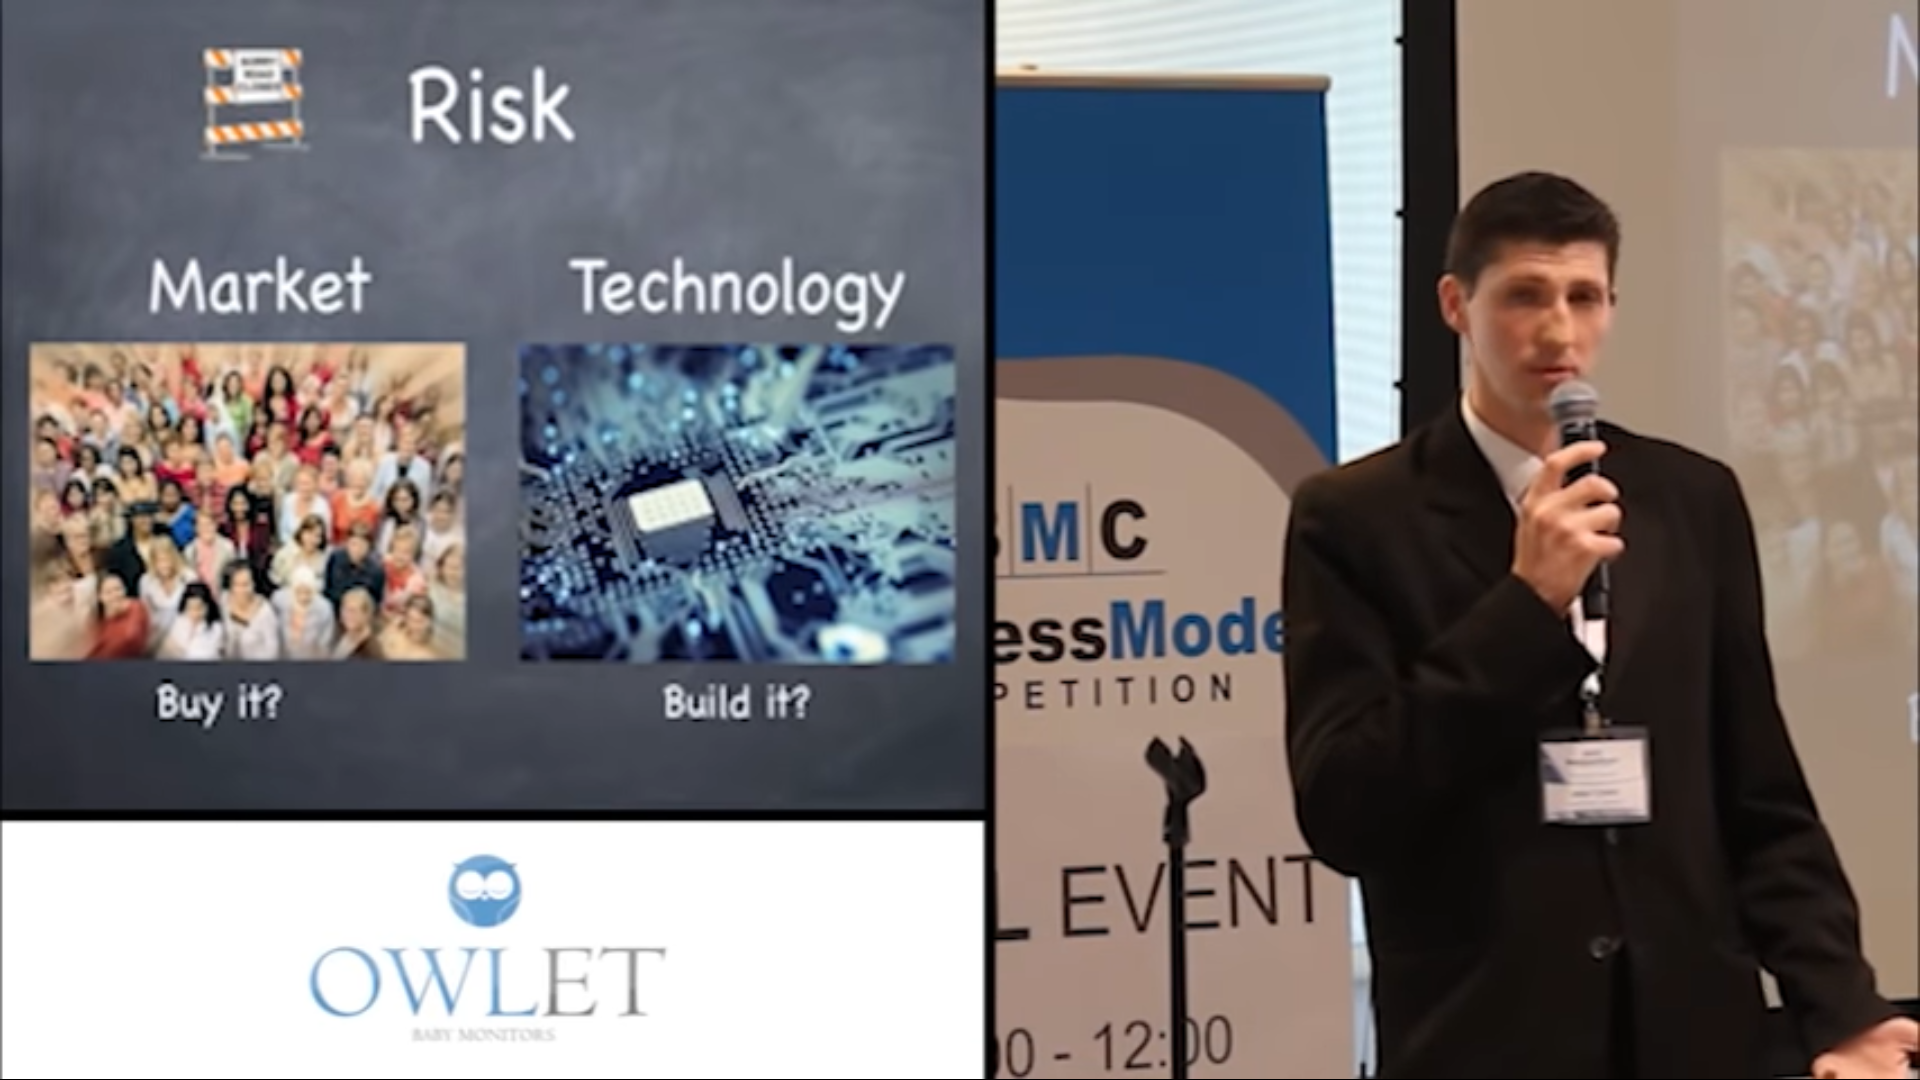 Colvin explaining why they tested market risk first before testing the technology risk